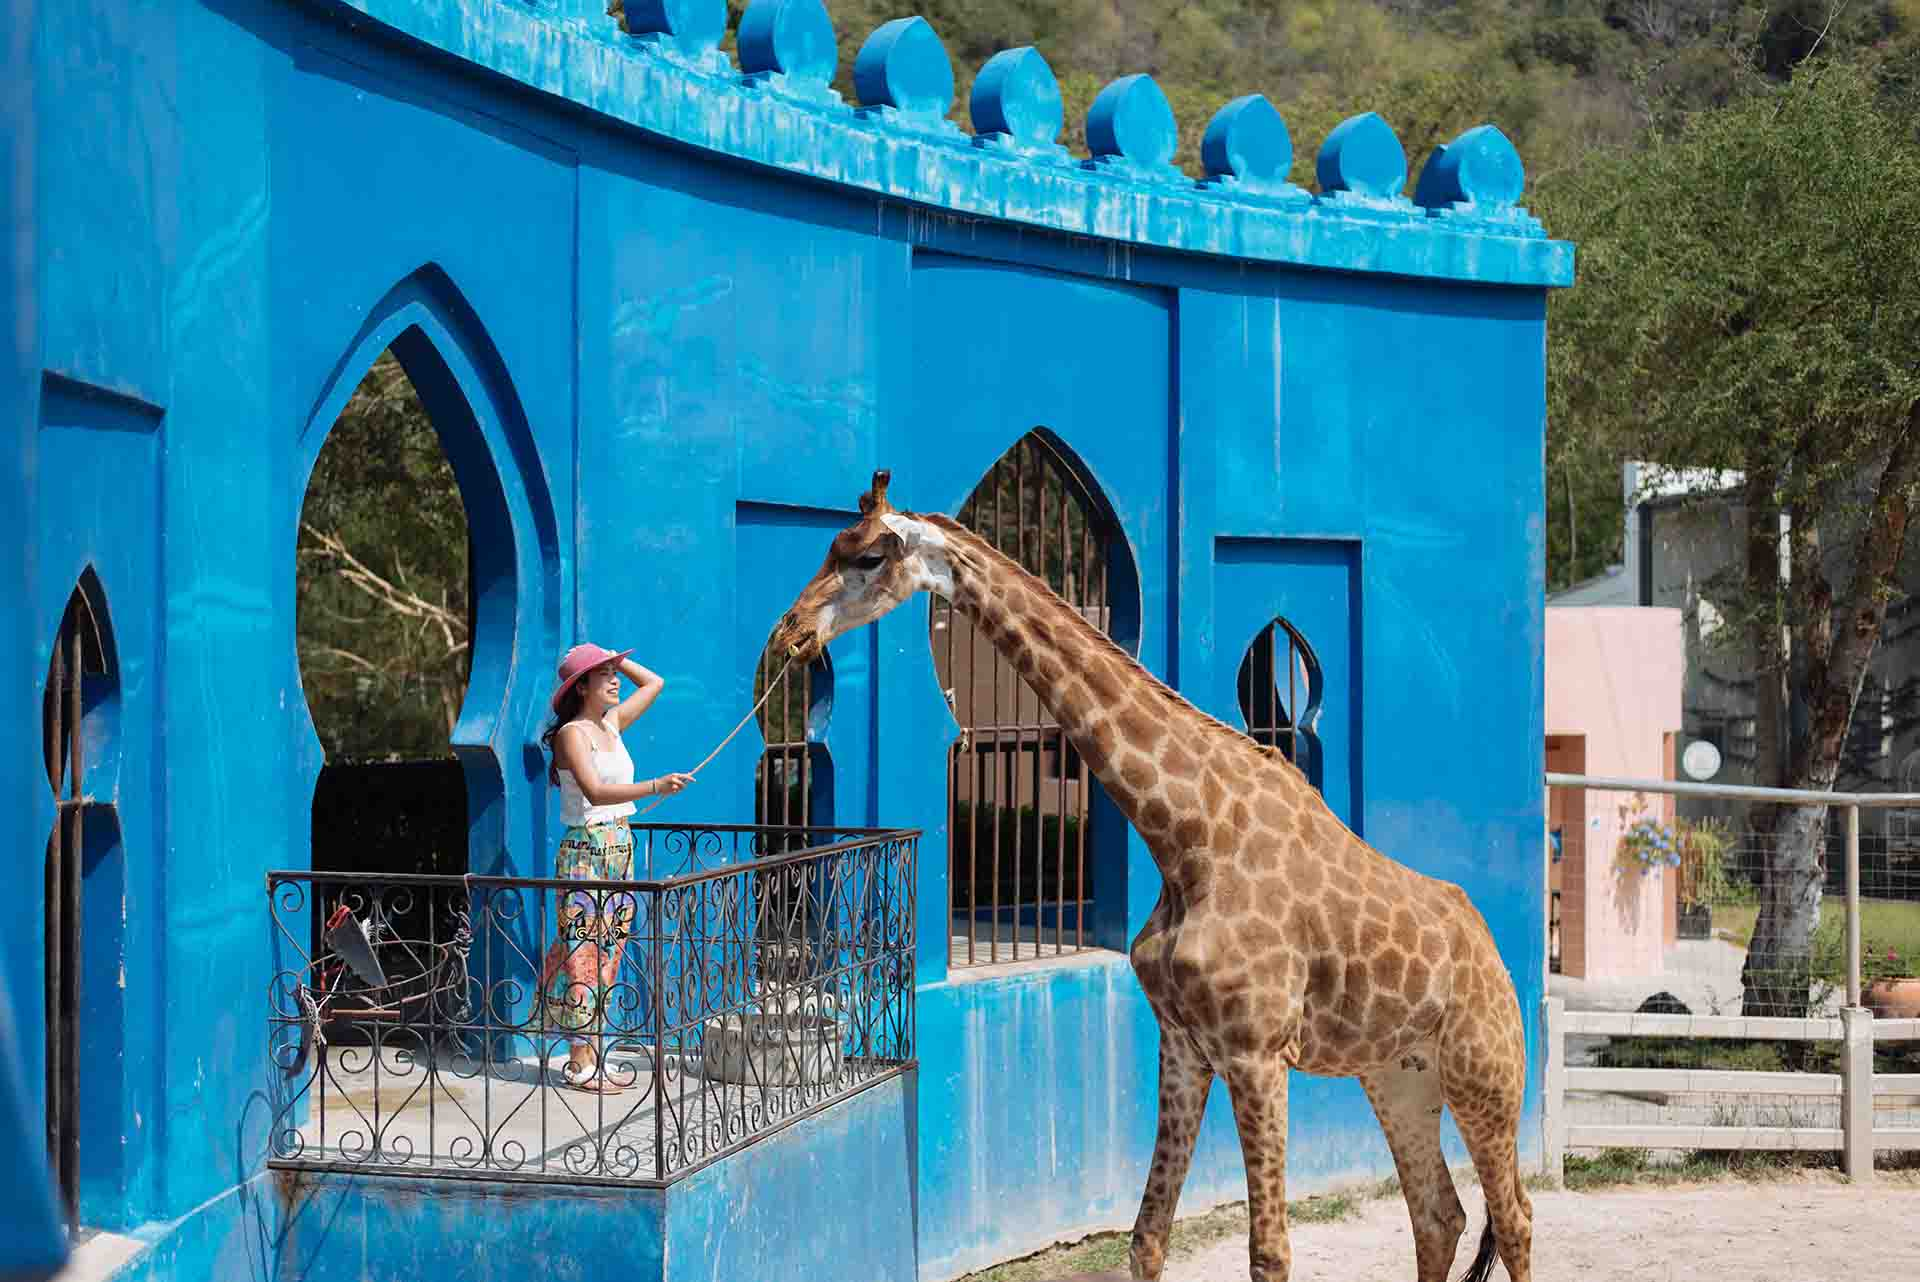 Person feeding a caged giraffe